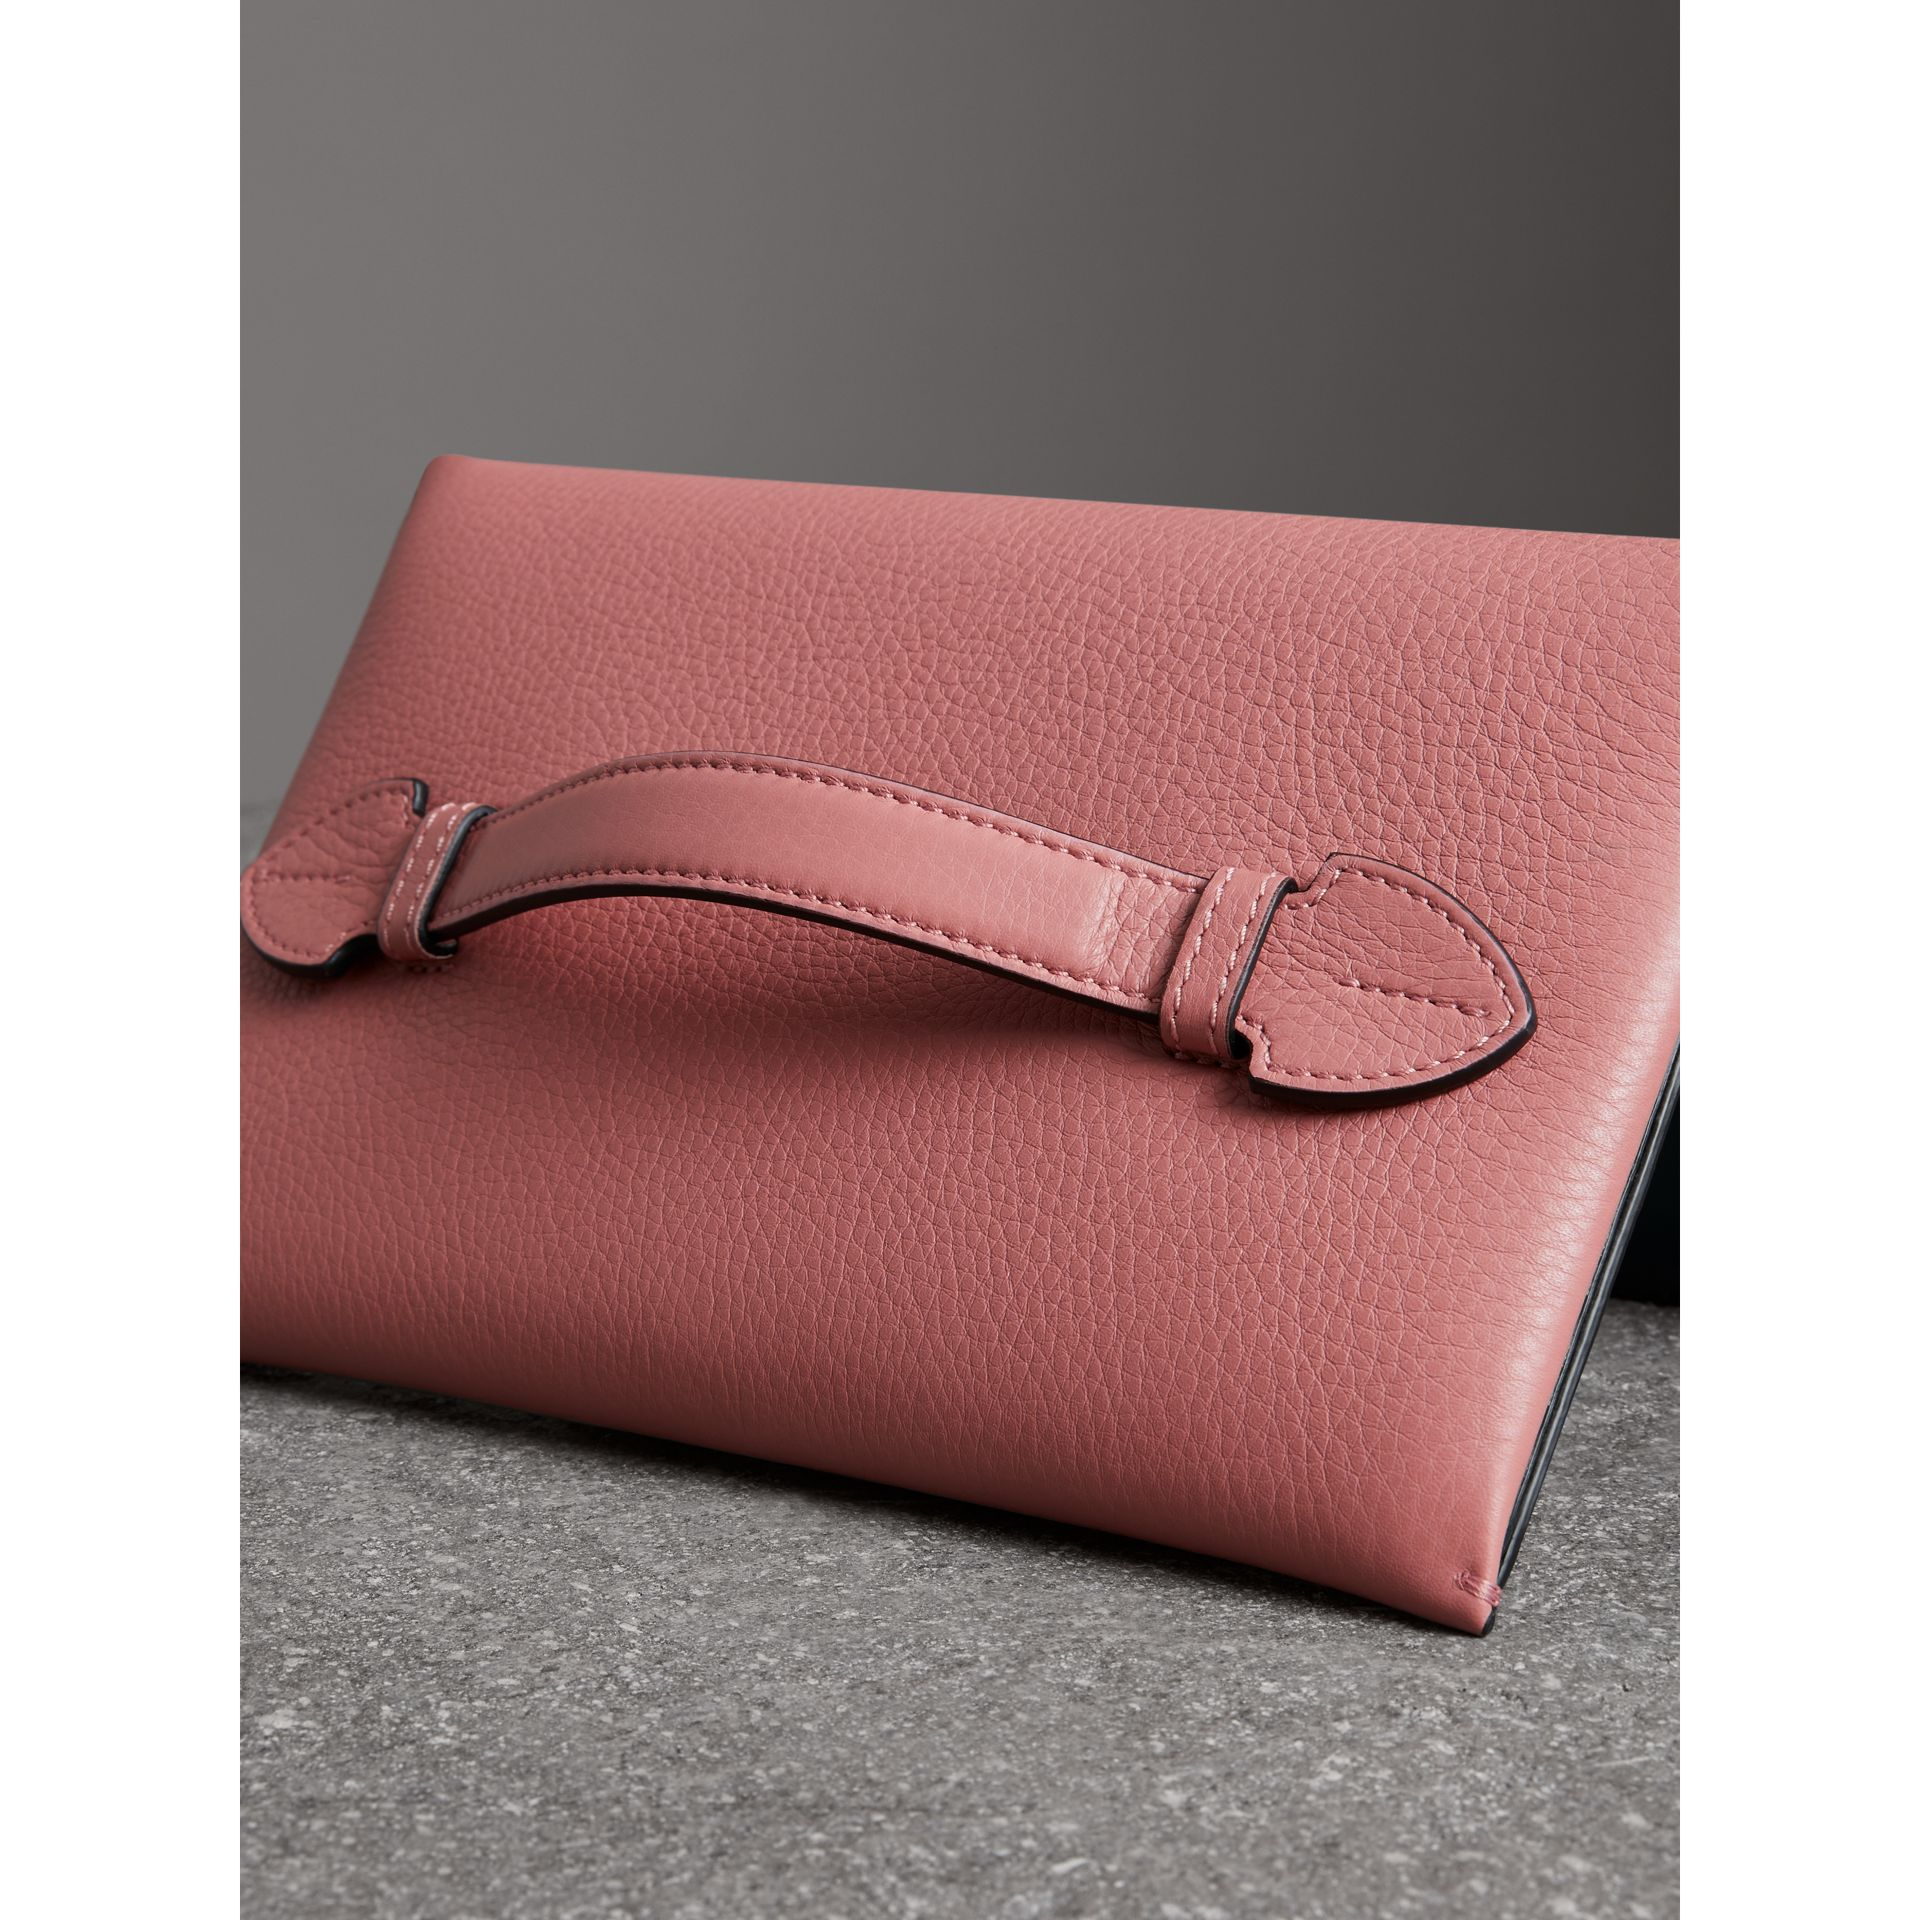 Two-tone Leather Wristlet Clutch in Dusty Rose - Women | Burberry - gallery image 2